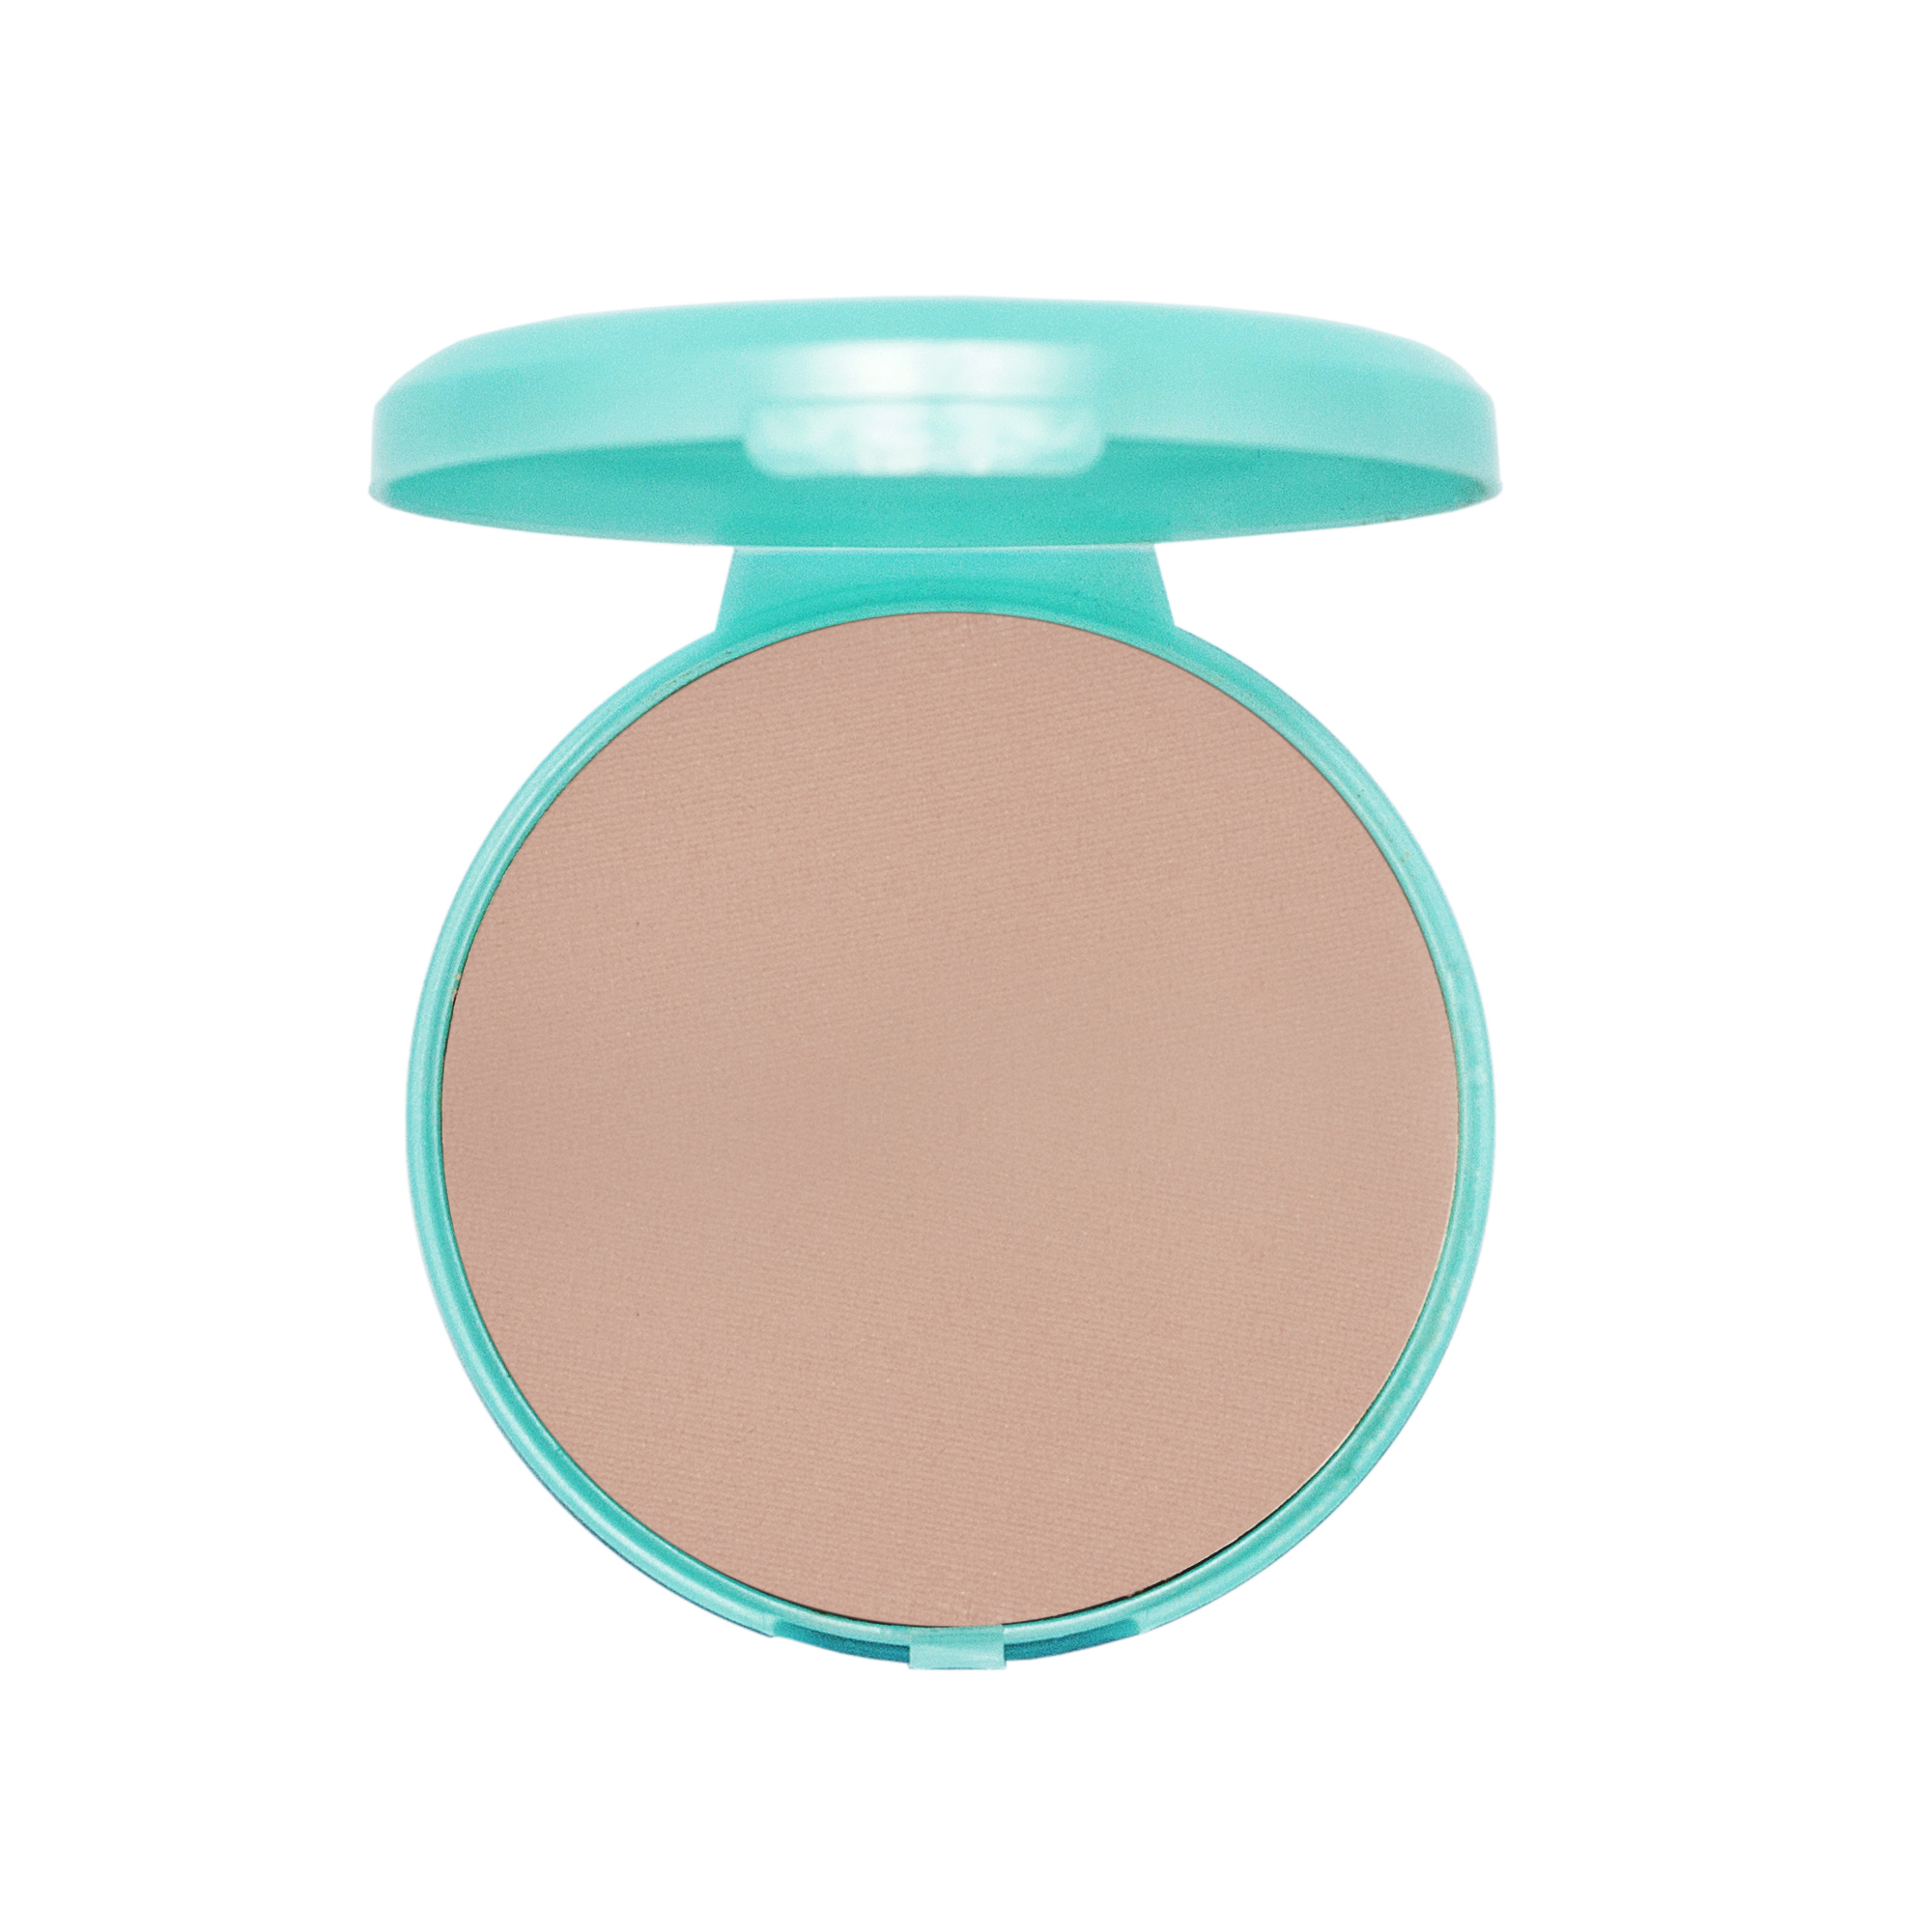 Wardah Luminous Compact Powder 04 14 Gr